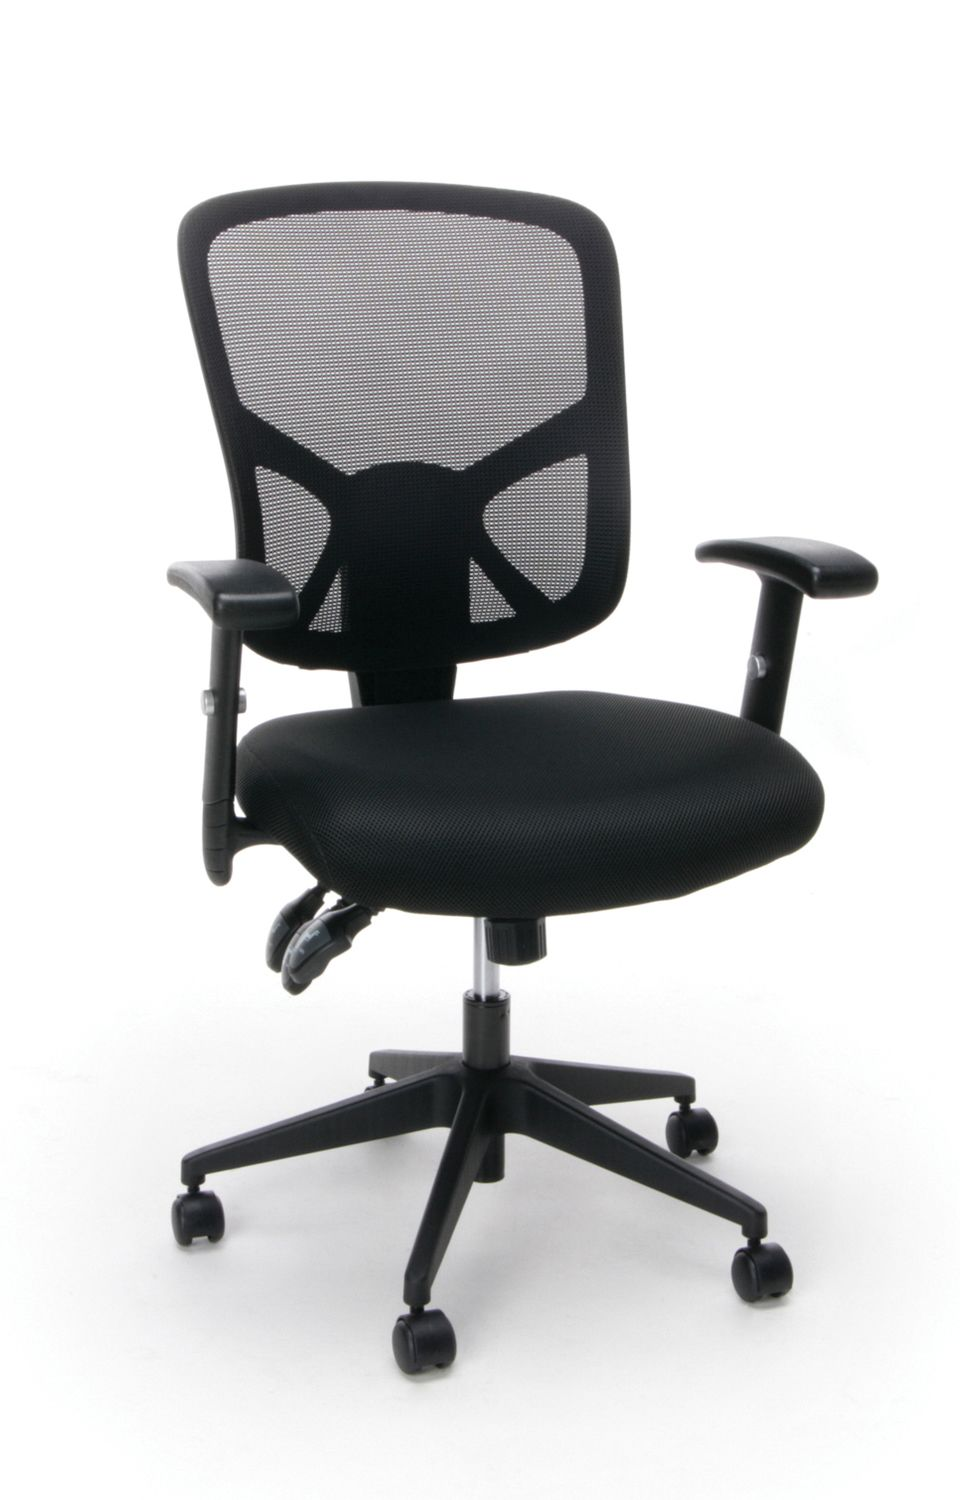 Ofm Essentials 3 Paddle Ergonomic Mesh High Back Chair Black Silver Best Office Chair Best Ergonomic Office Chair Stylish Office Chairs